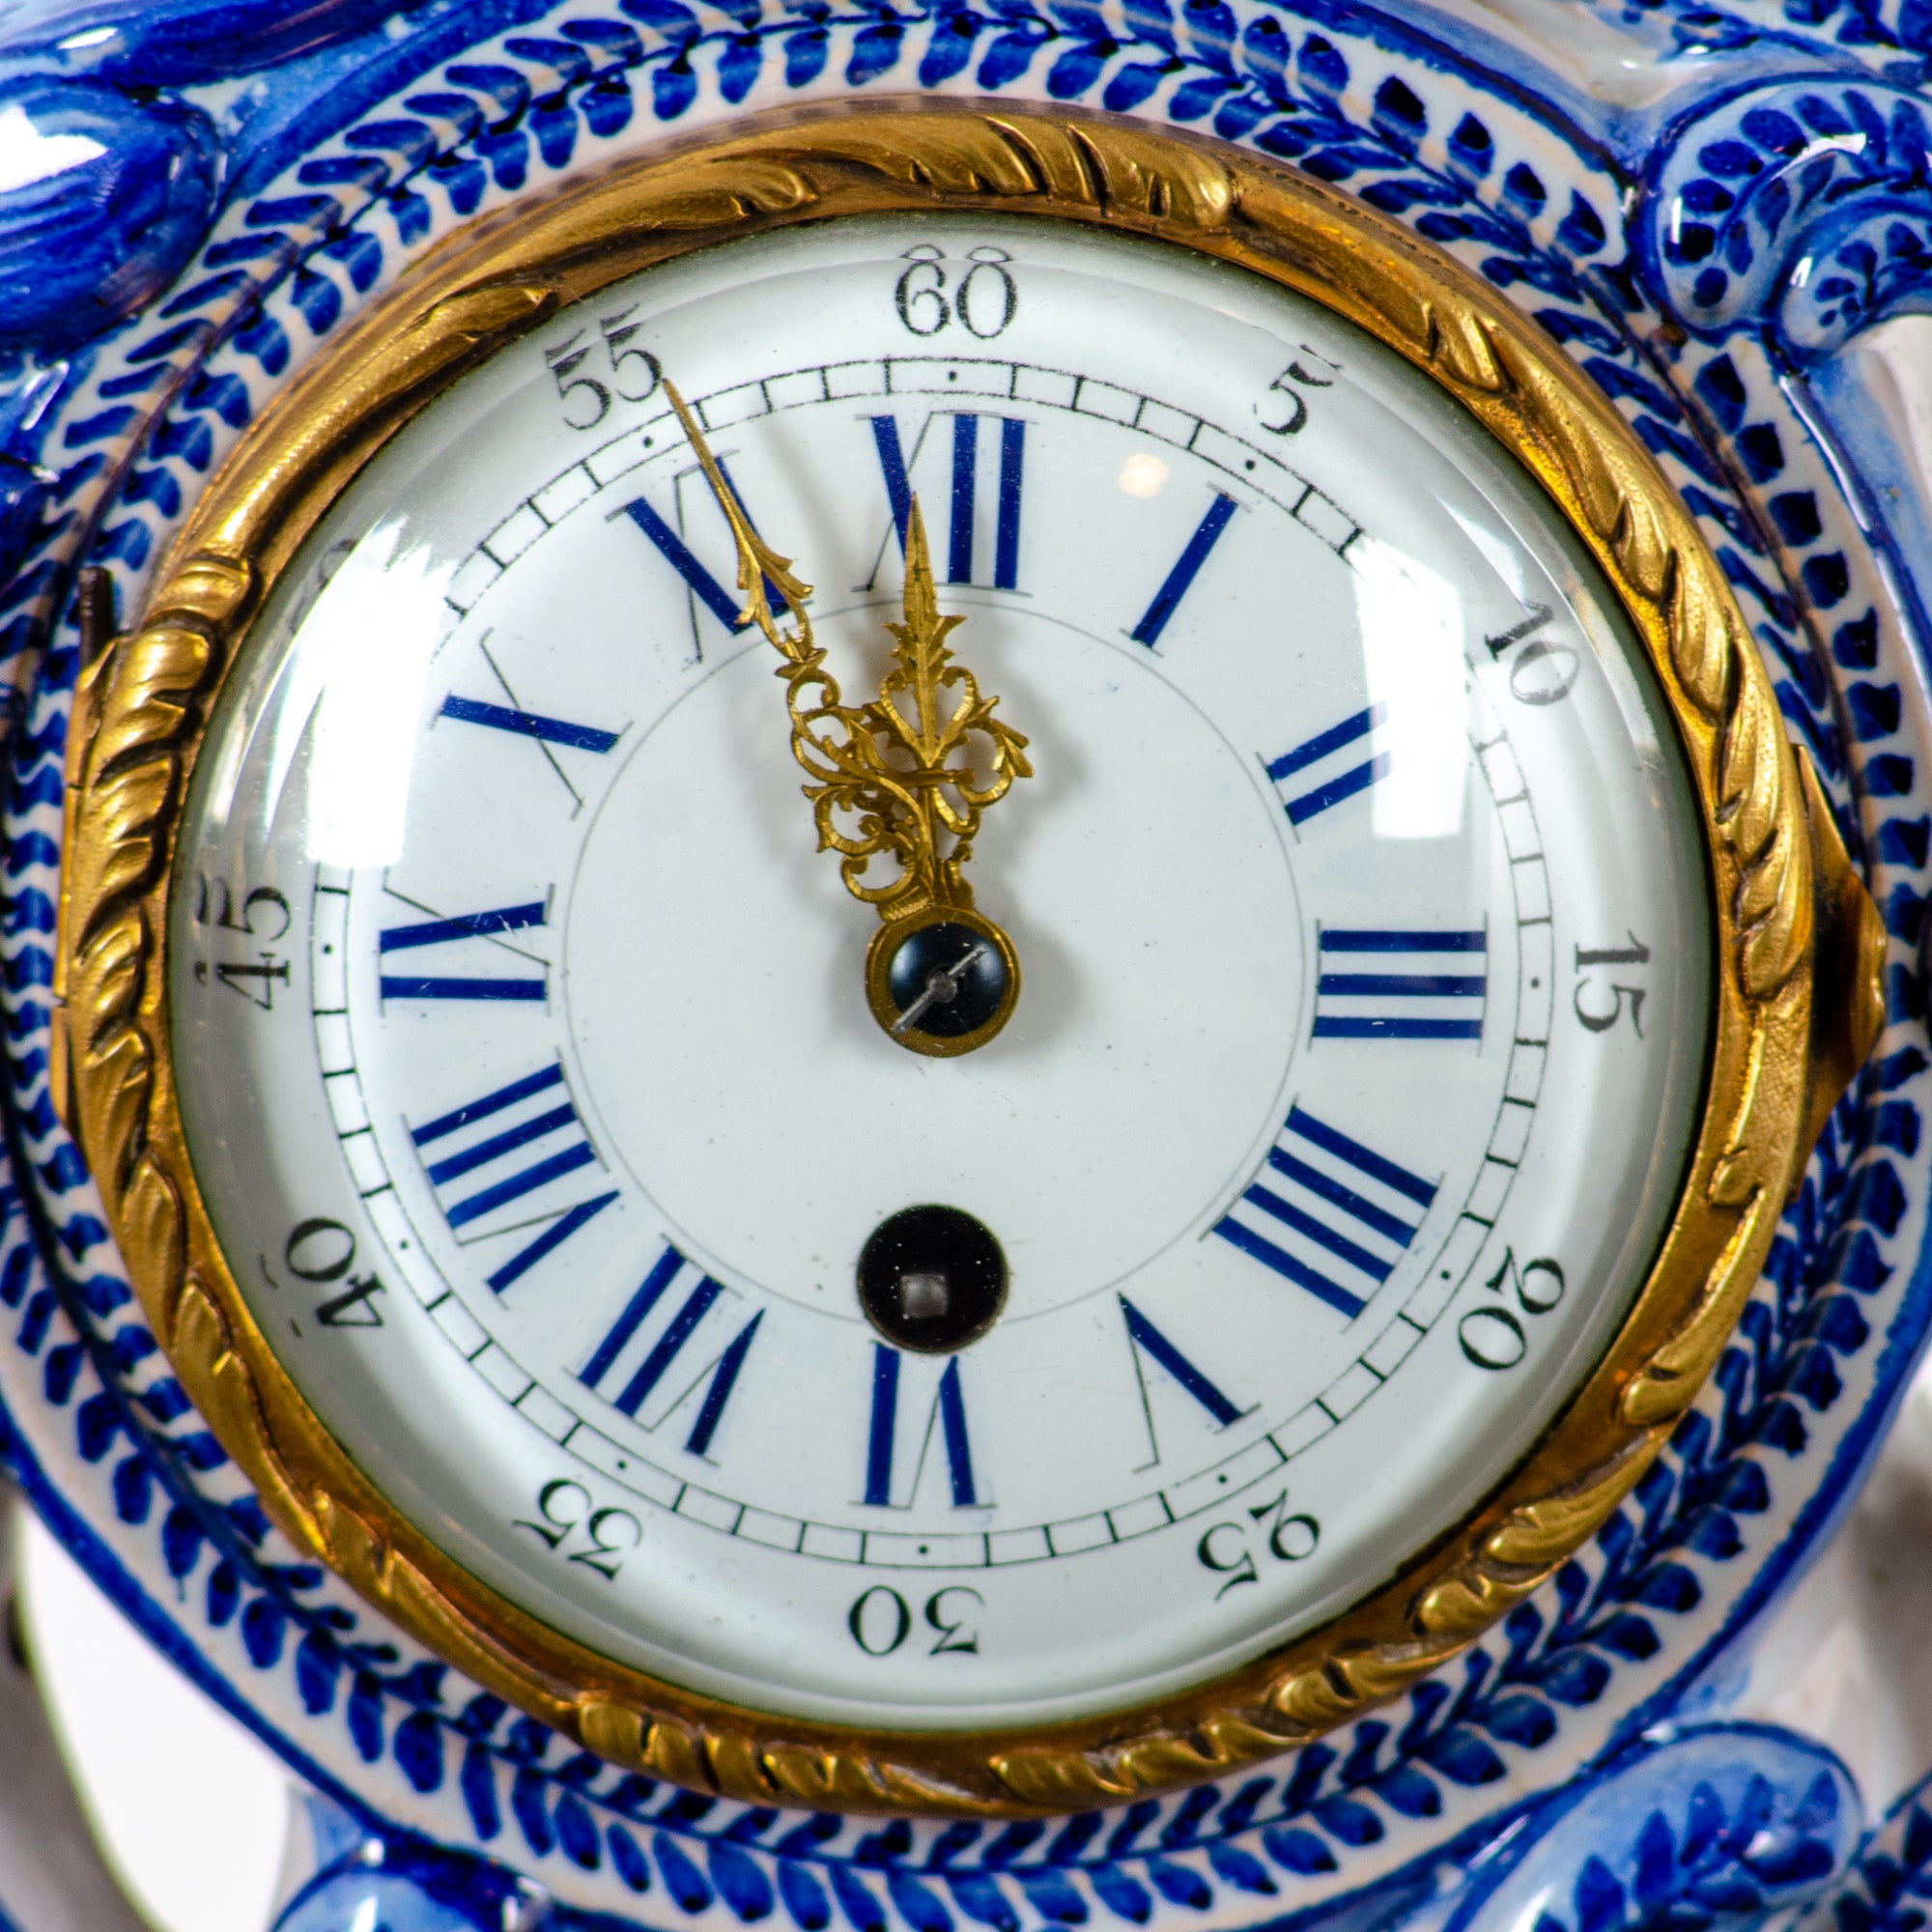 Emile Gallé Rococo Faience Mantle Clock, 19th Century